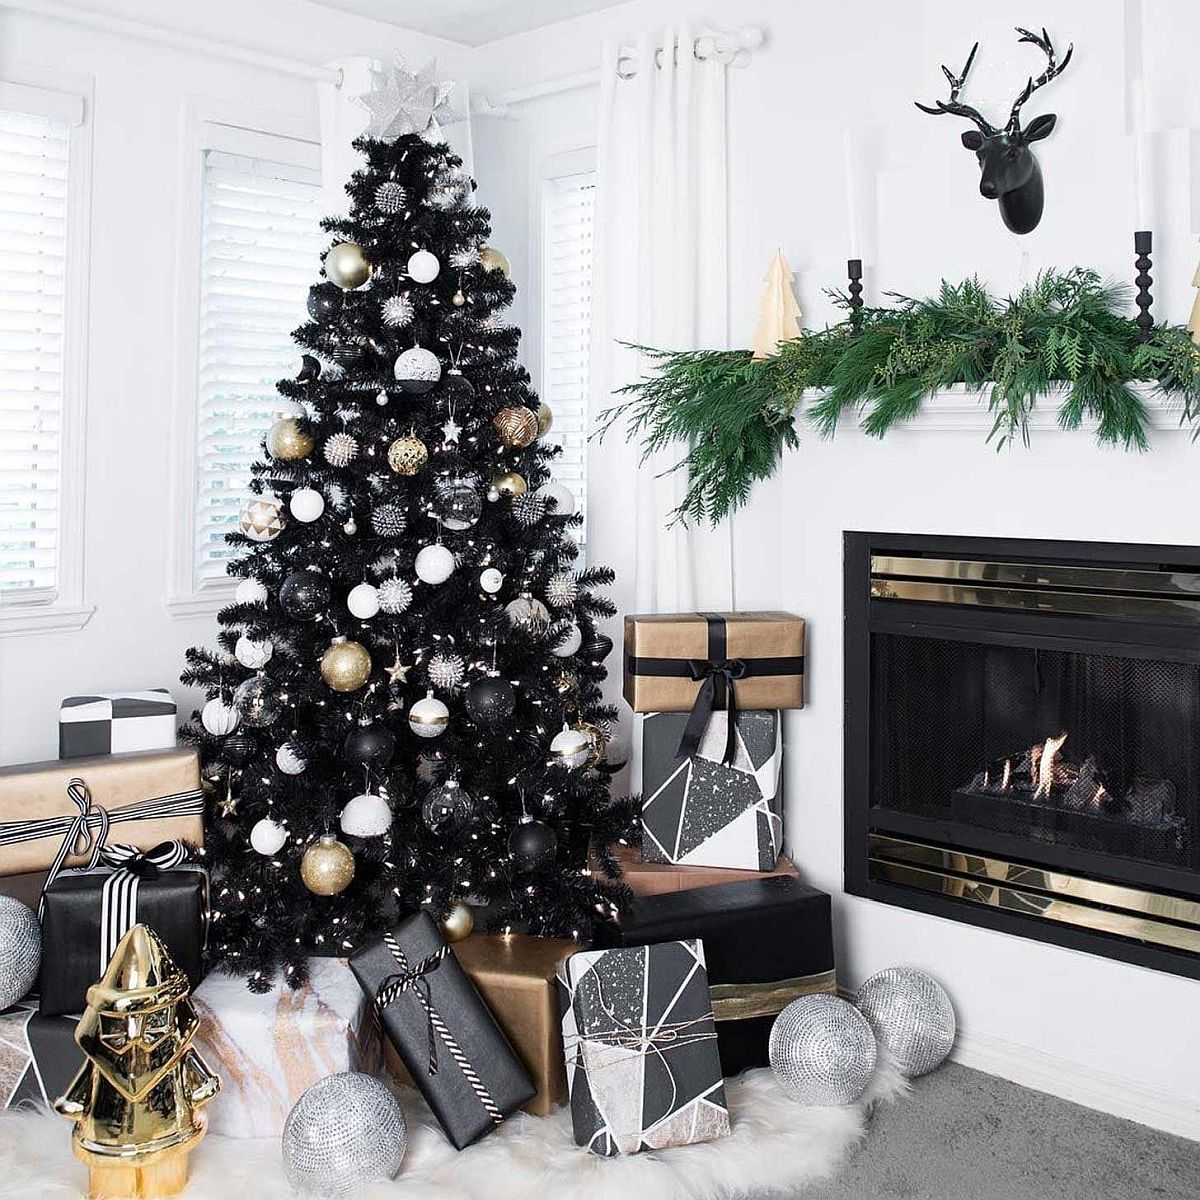 Black Is The New Festive Black Christmas Trees Steal The Spotlight